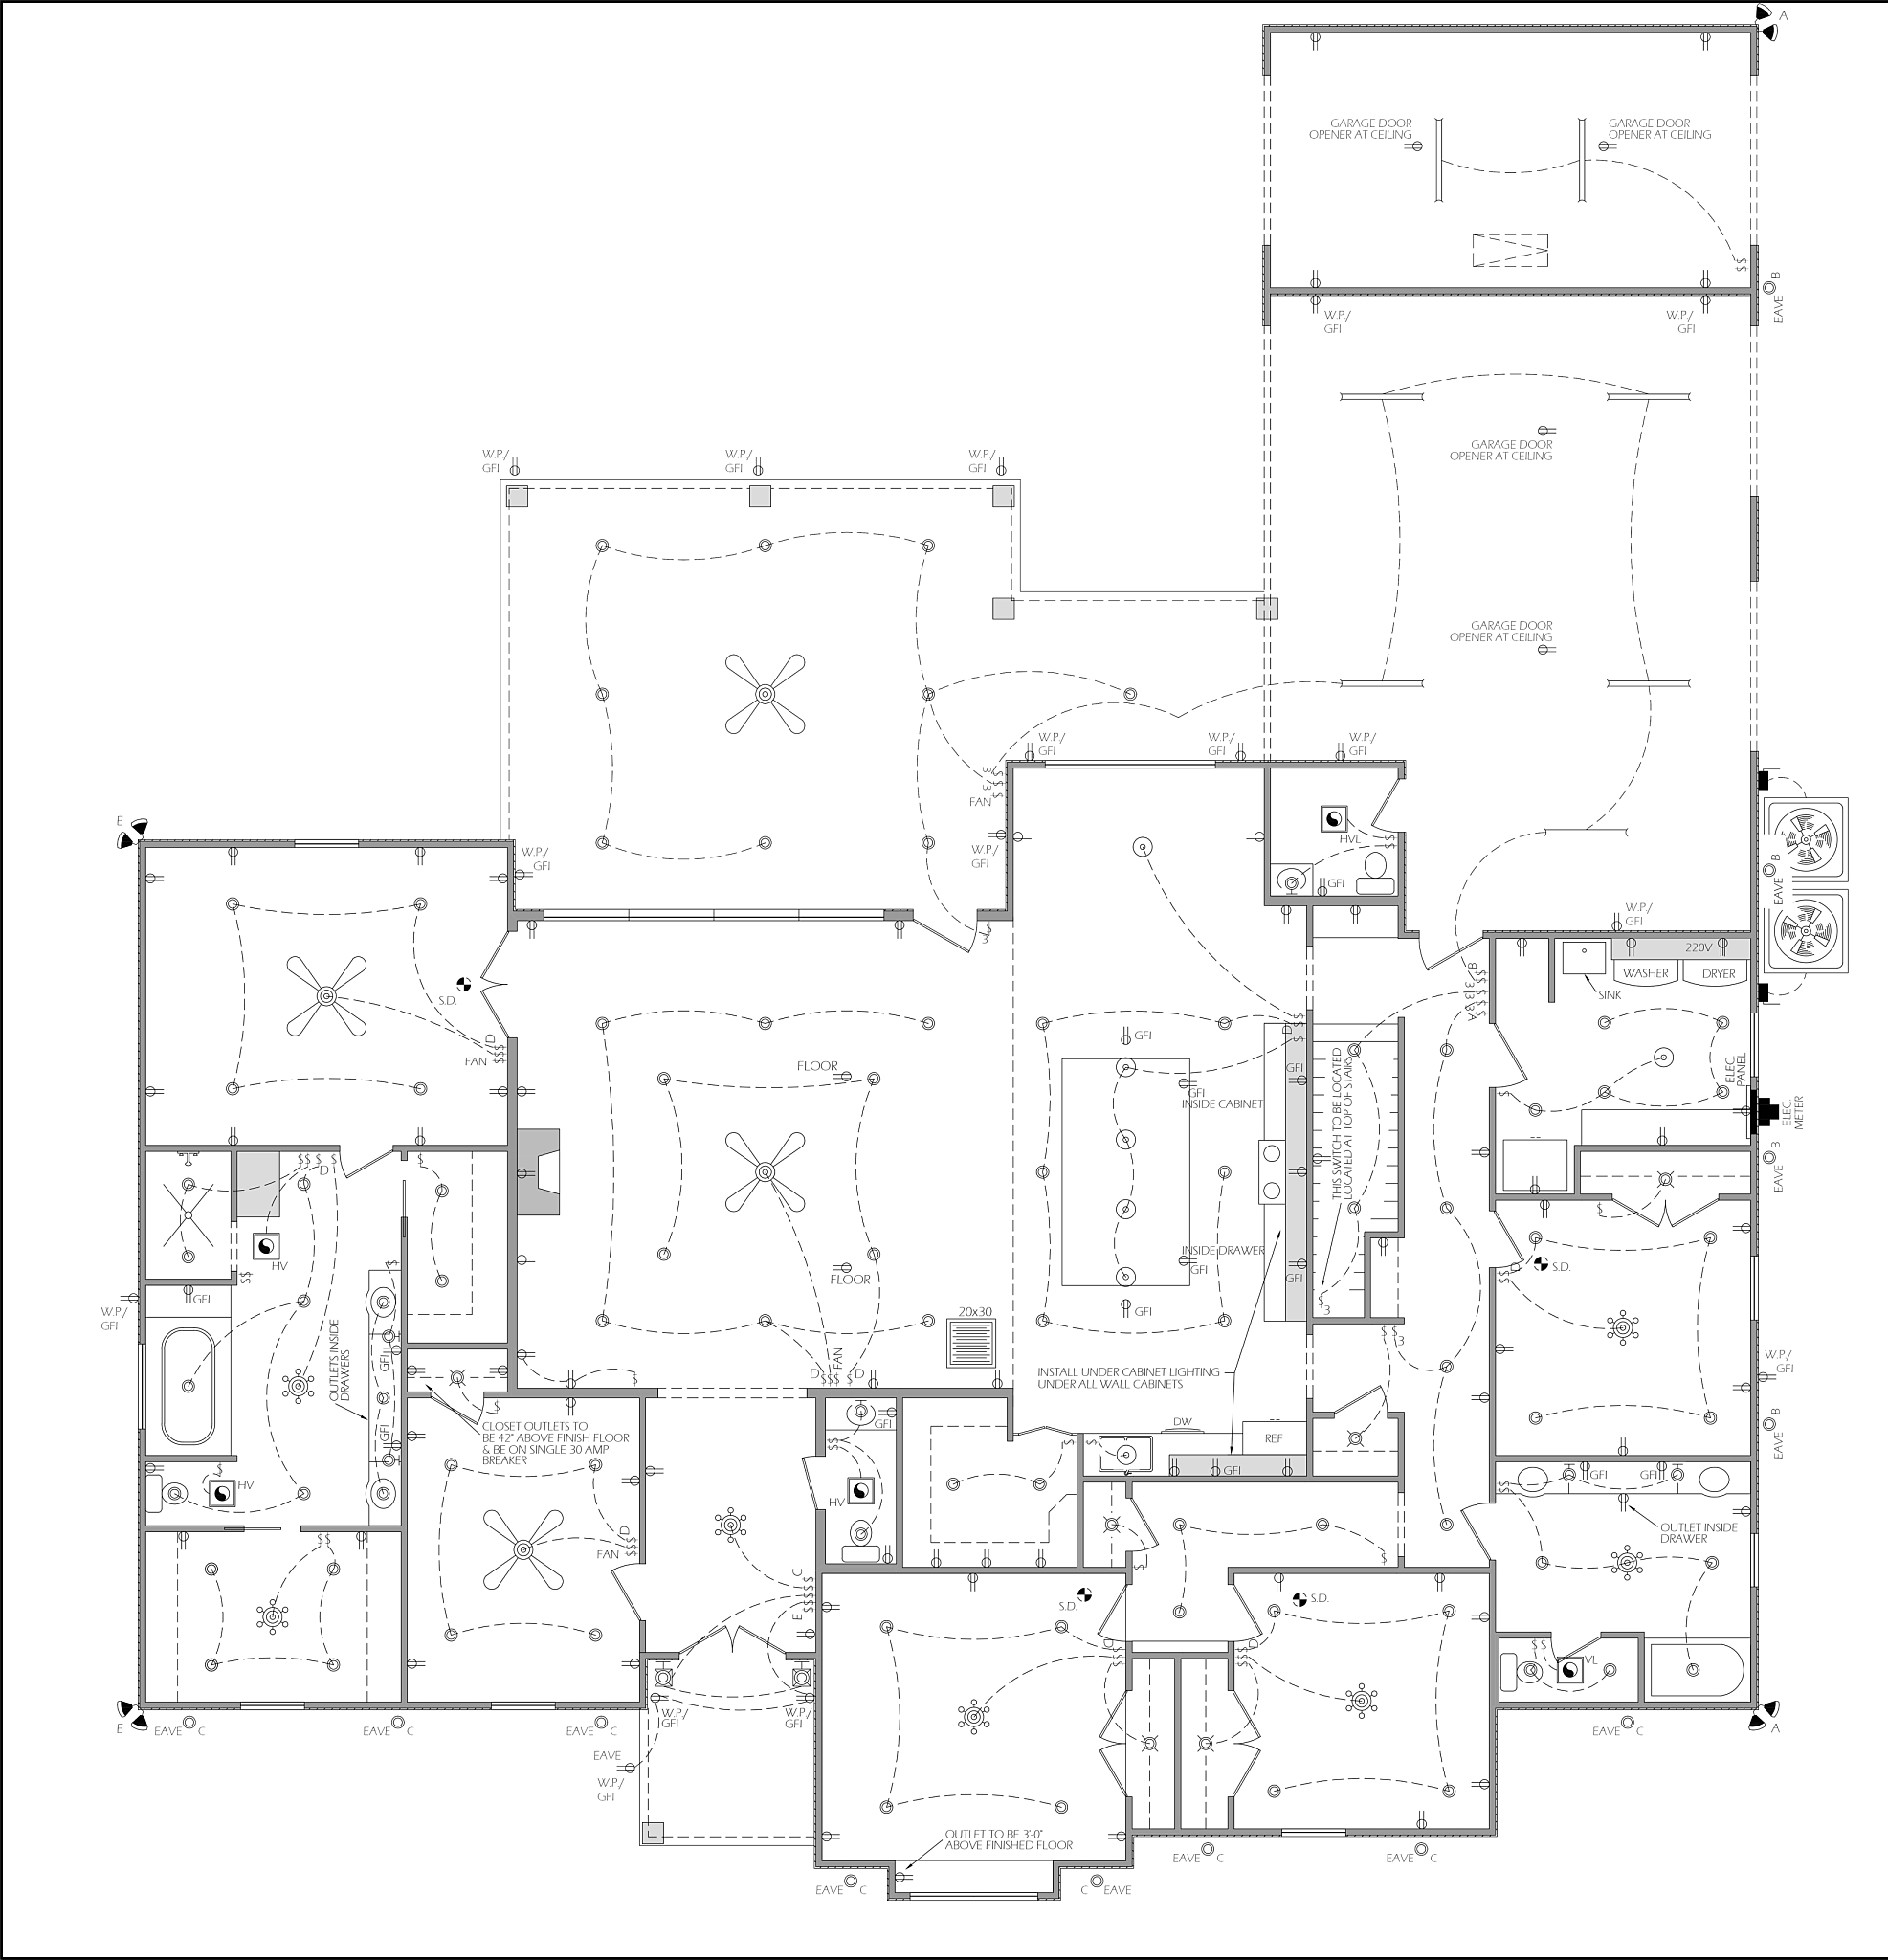 Lake charles, La, House build, new construction, craftsman house, modern, self contracting, dream home, black and white, Dunham price, Decker pumping, Anderson windows, anderson doors, open concept, 12 foot ceilings, building the dream, fontenot dream home, foam insulation, bonus room, home office, hf photography, fontenot